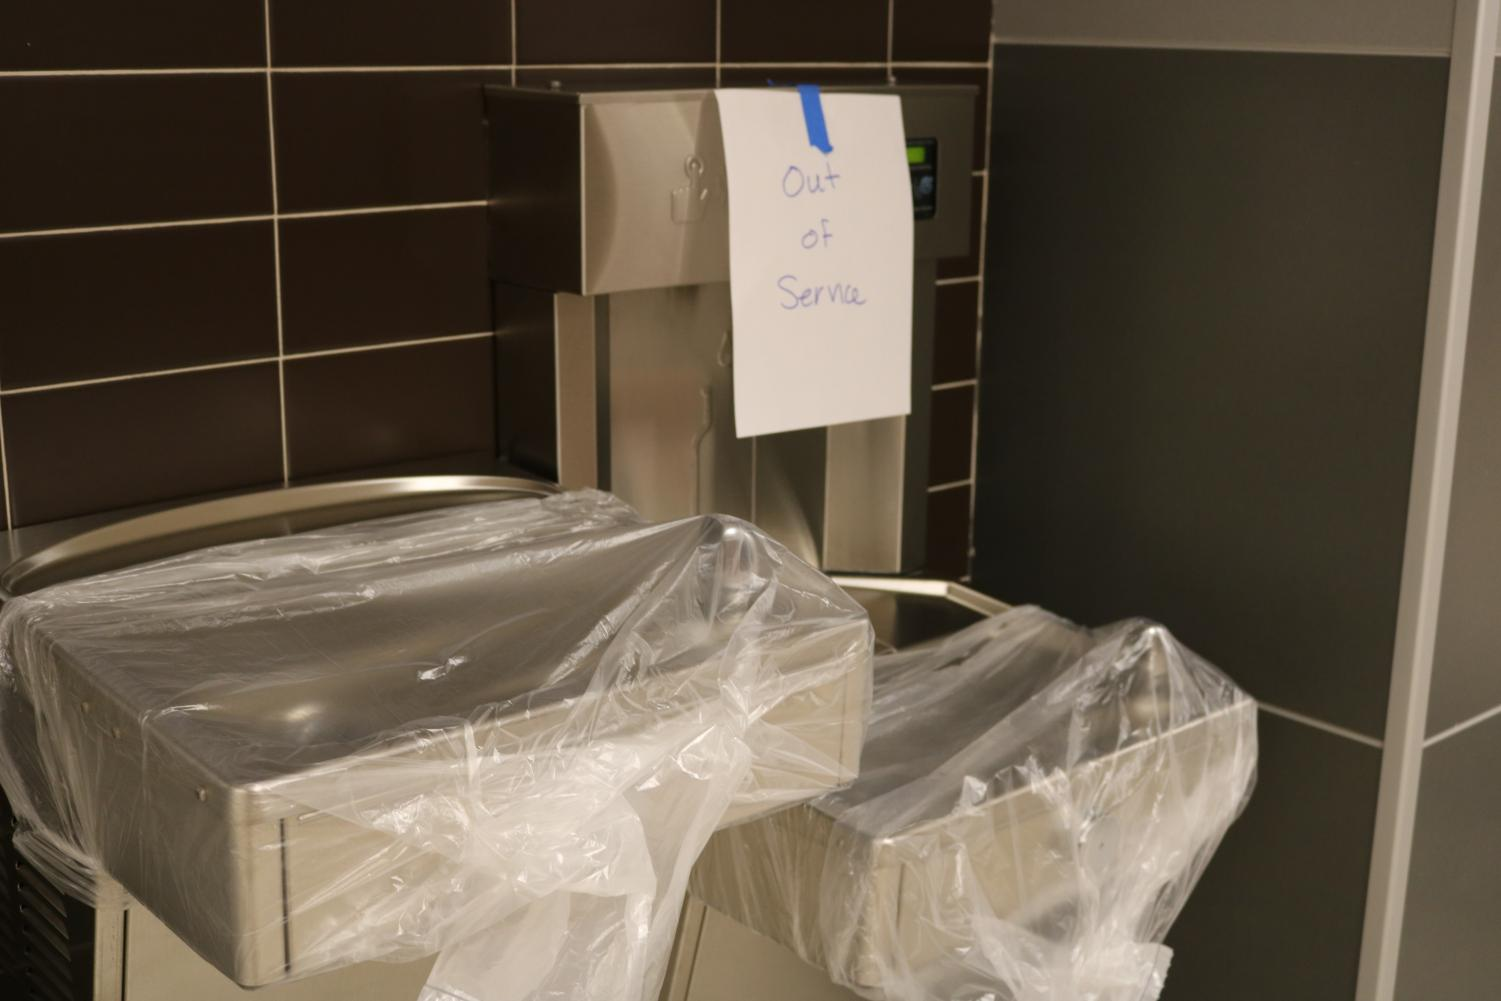 The water fountains remain covered so students do not drink potentially contaminated water.